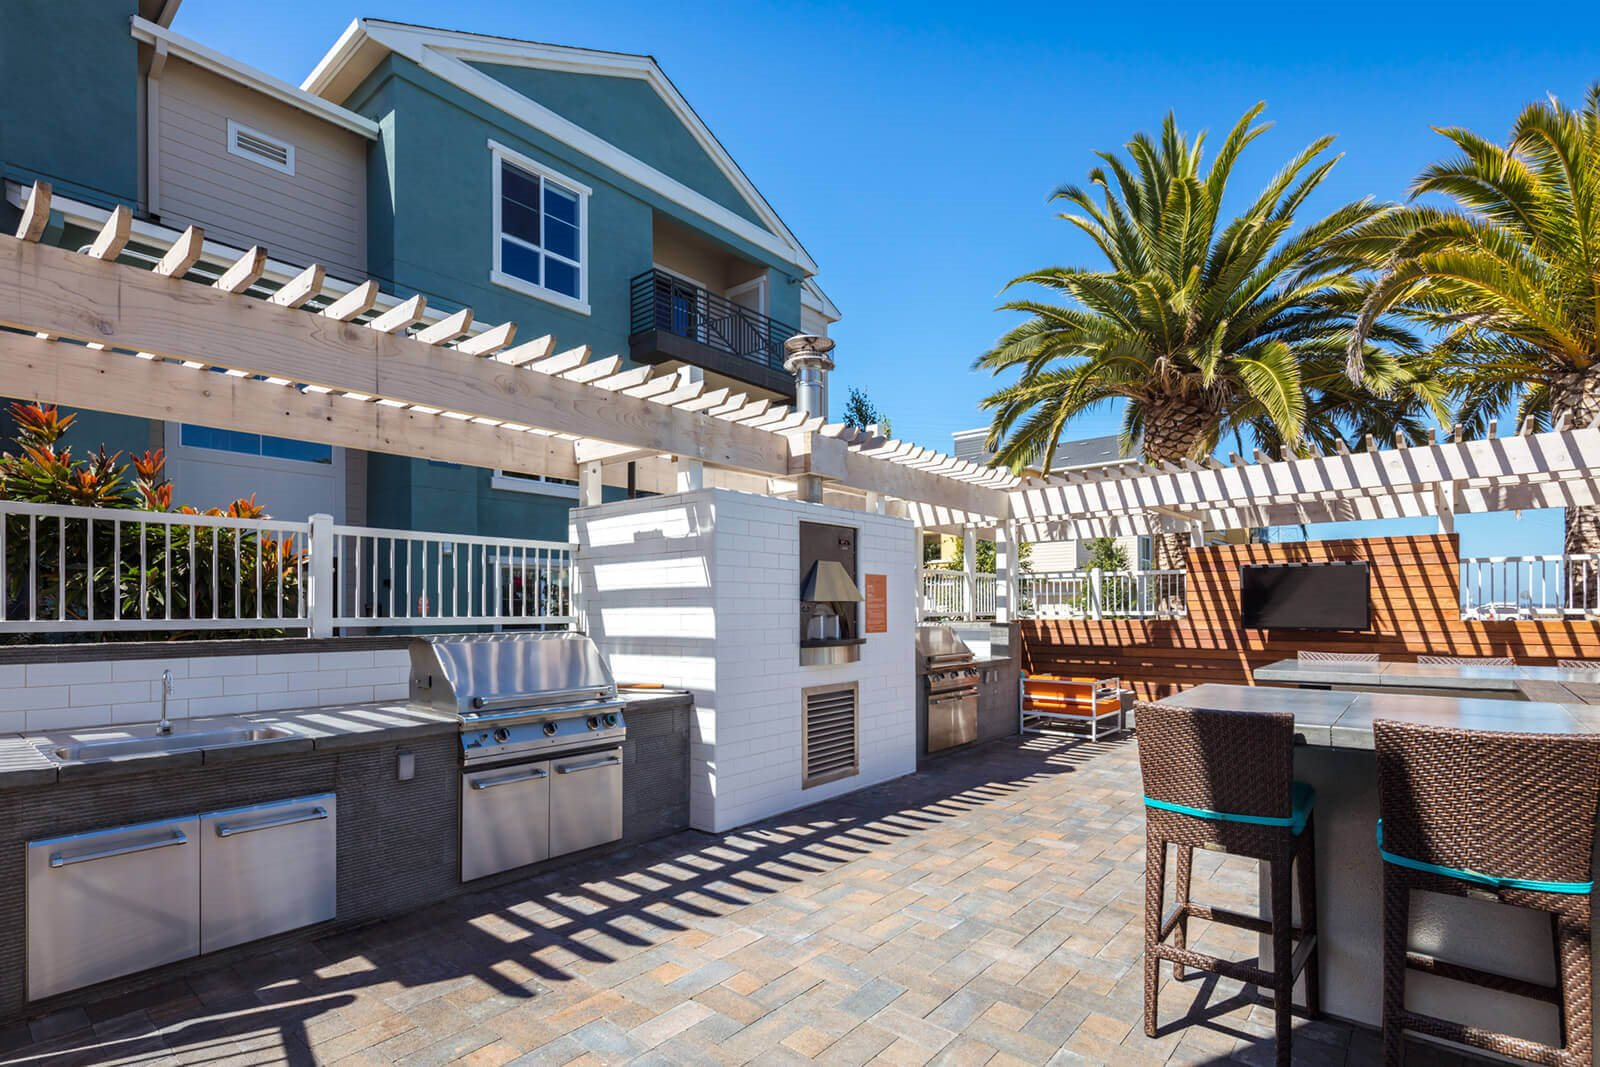 Outdoor Grilling Station at Blu Harbor by Windsor, CA, 94063